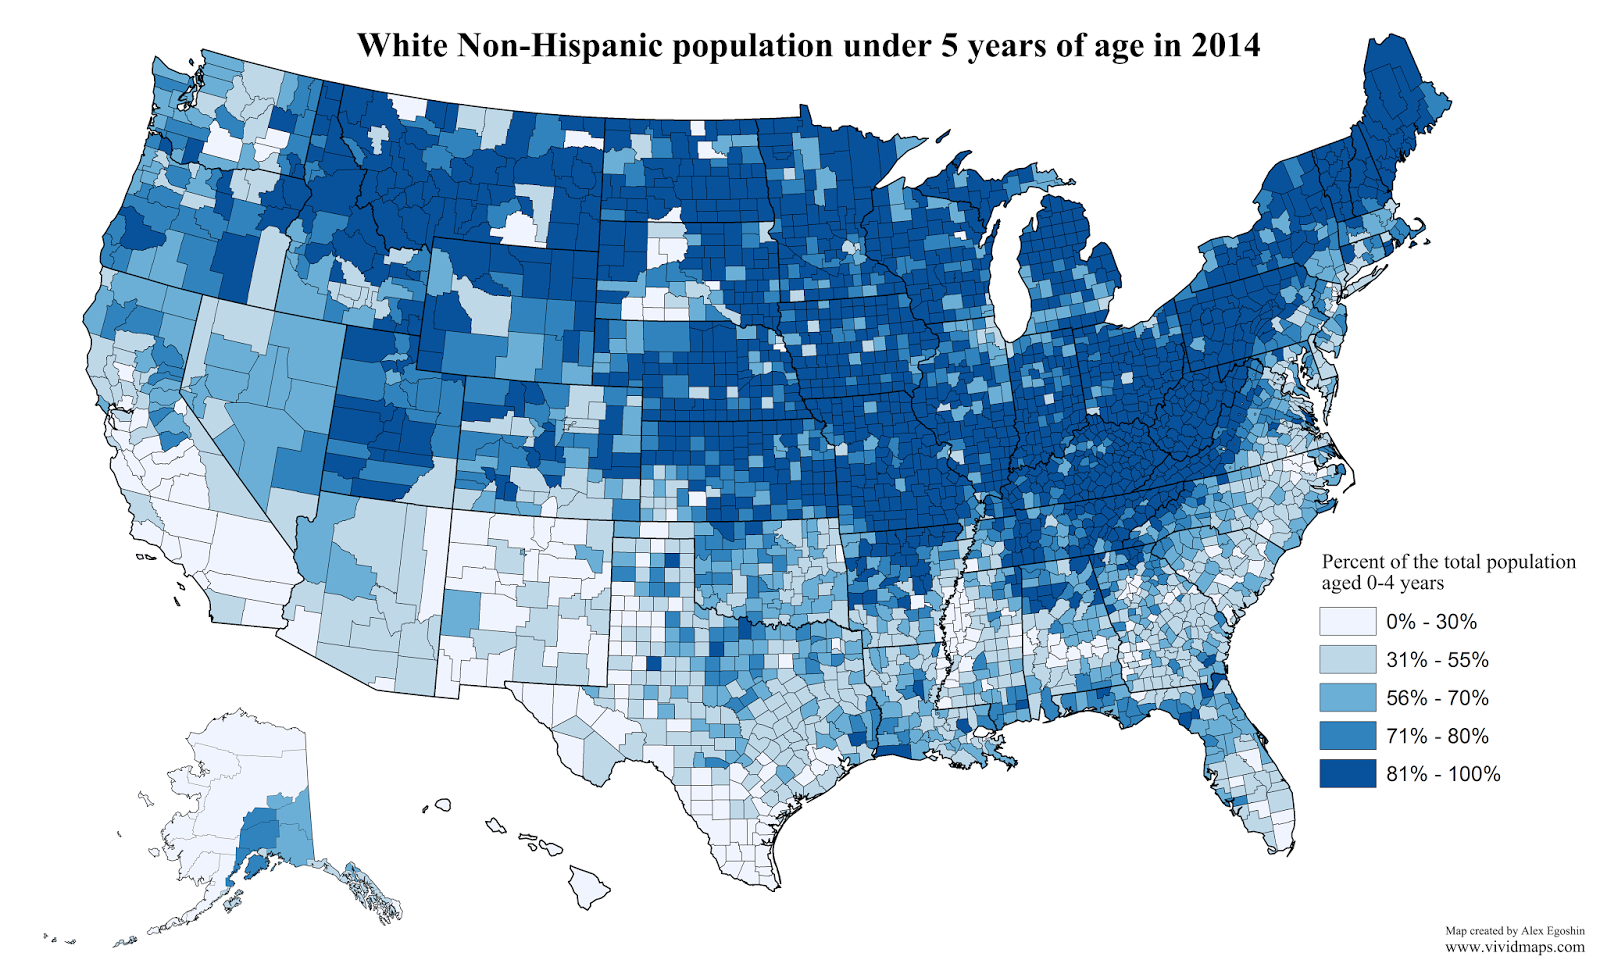 White non-hispanic population under 5 years of age in 2014